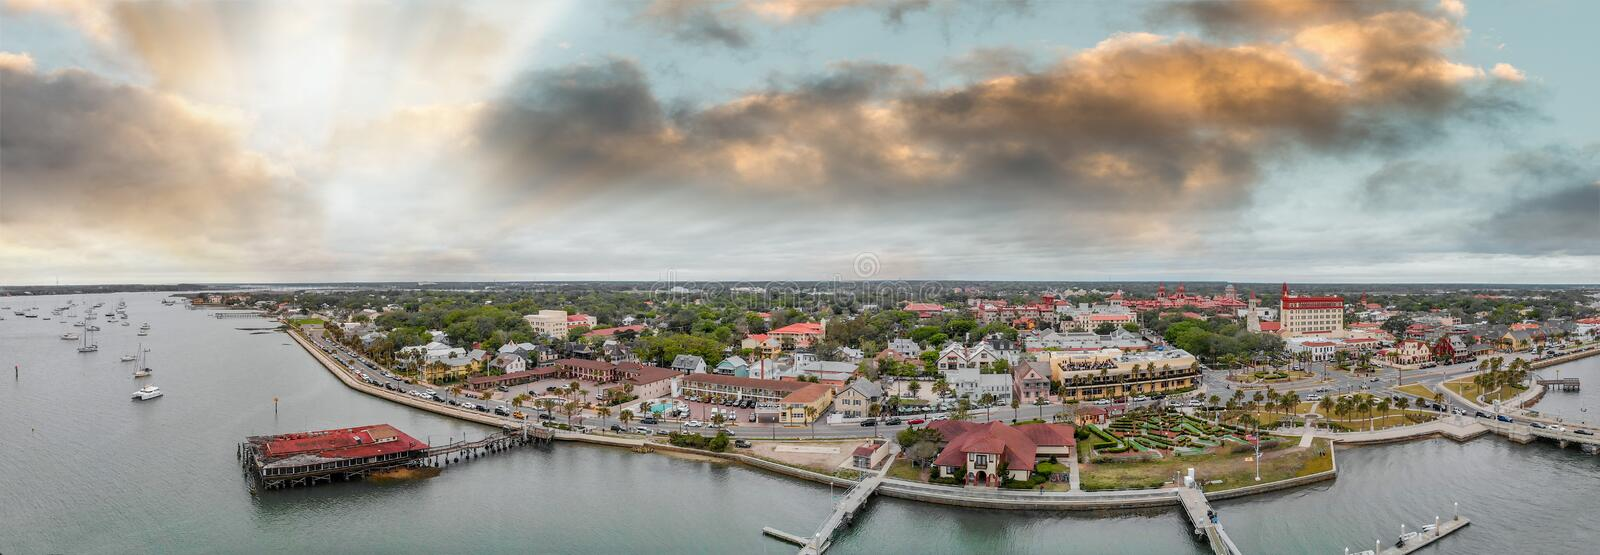 Aerial view of St Augustine from drone. Sunset panorama from cit royalty free stock photos